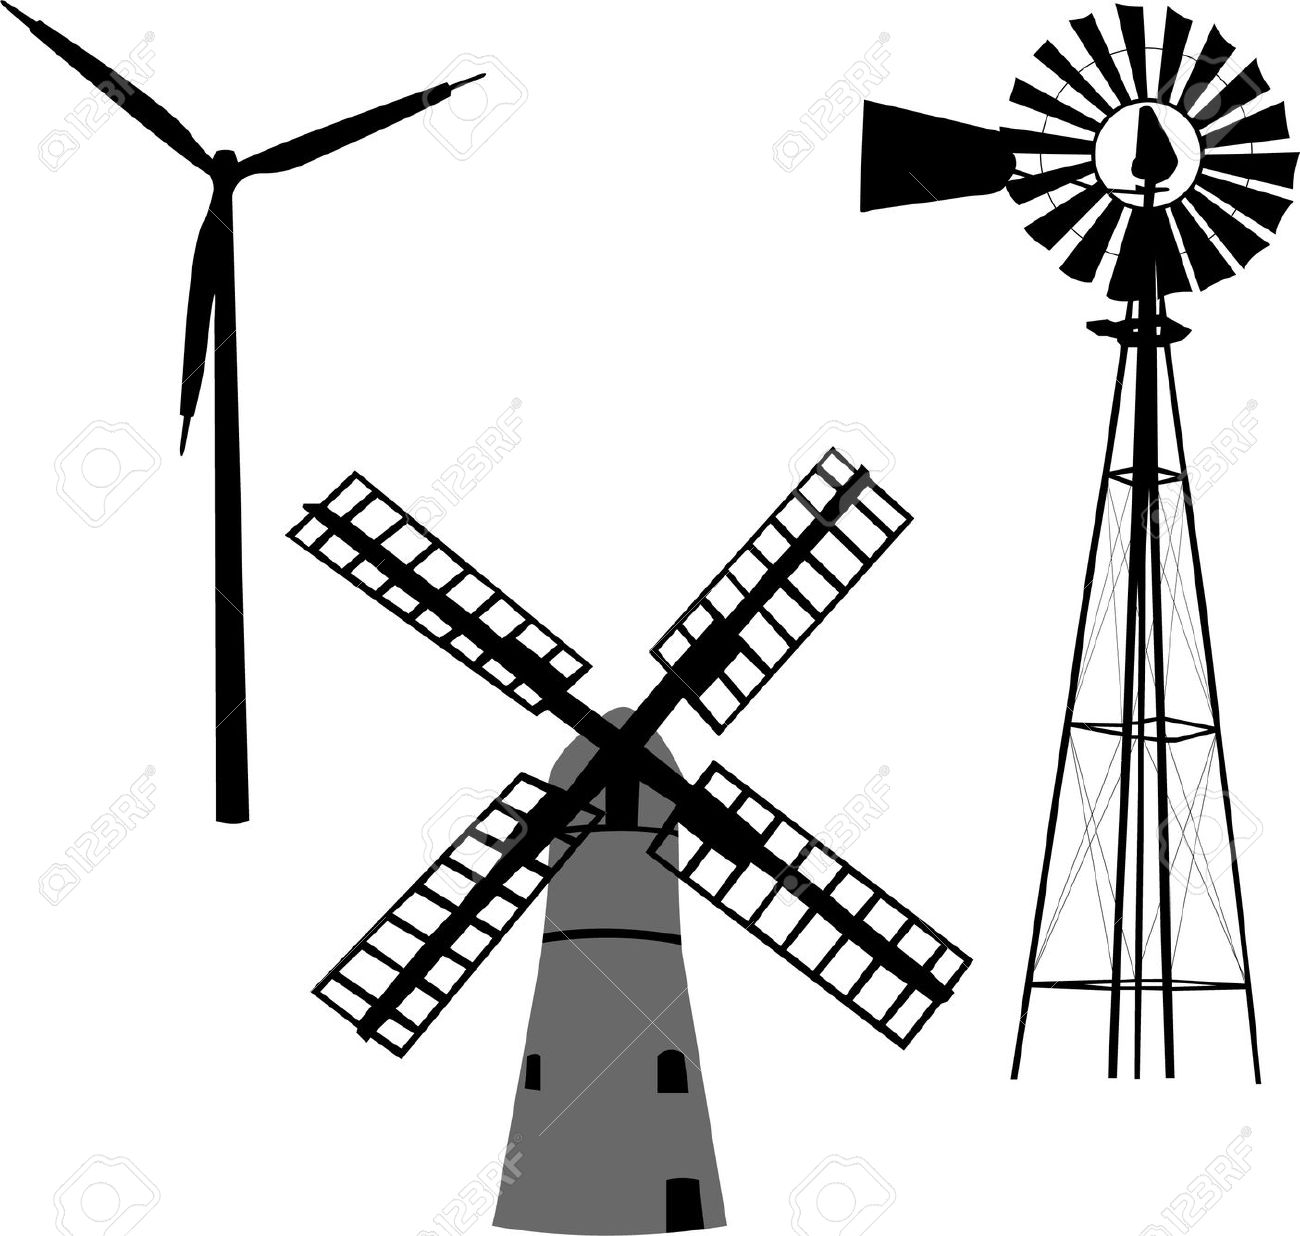 Windmill Clipart & Windmill Clip Art Images.